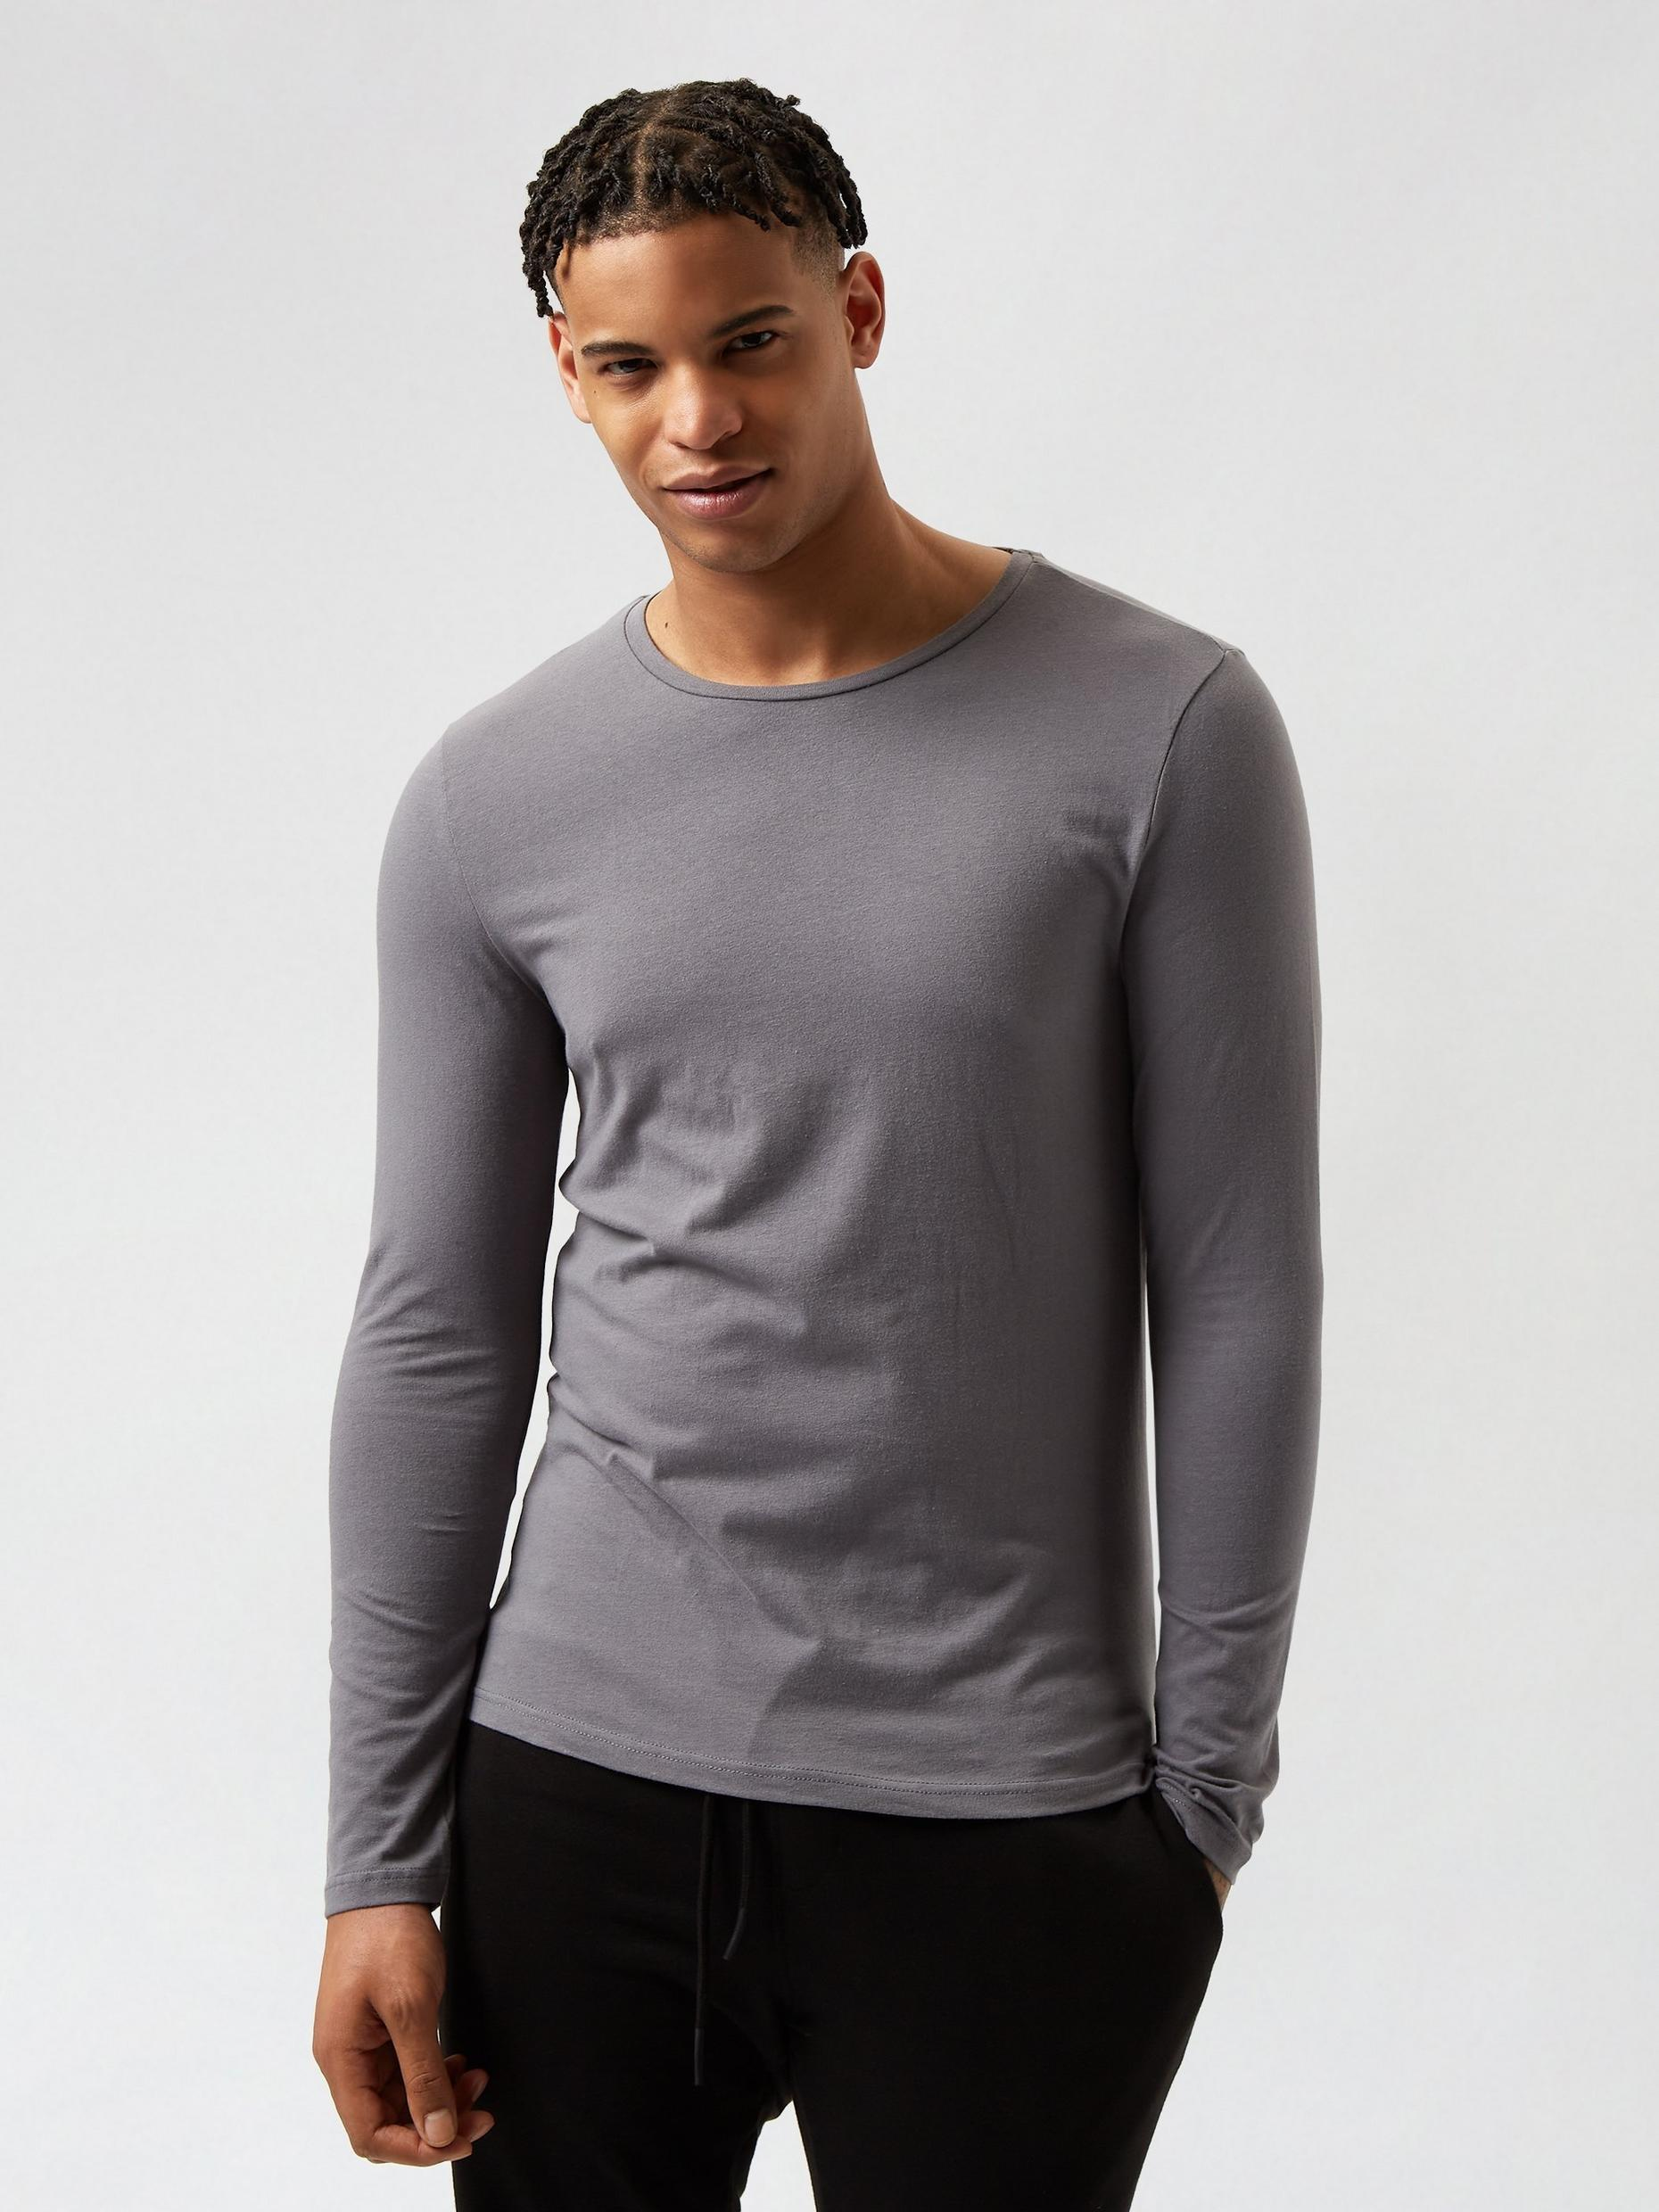 2 Pack Khaki and Grey Long Sleeved Muscle TShirts